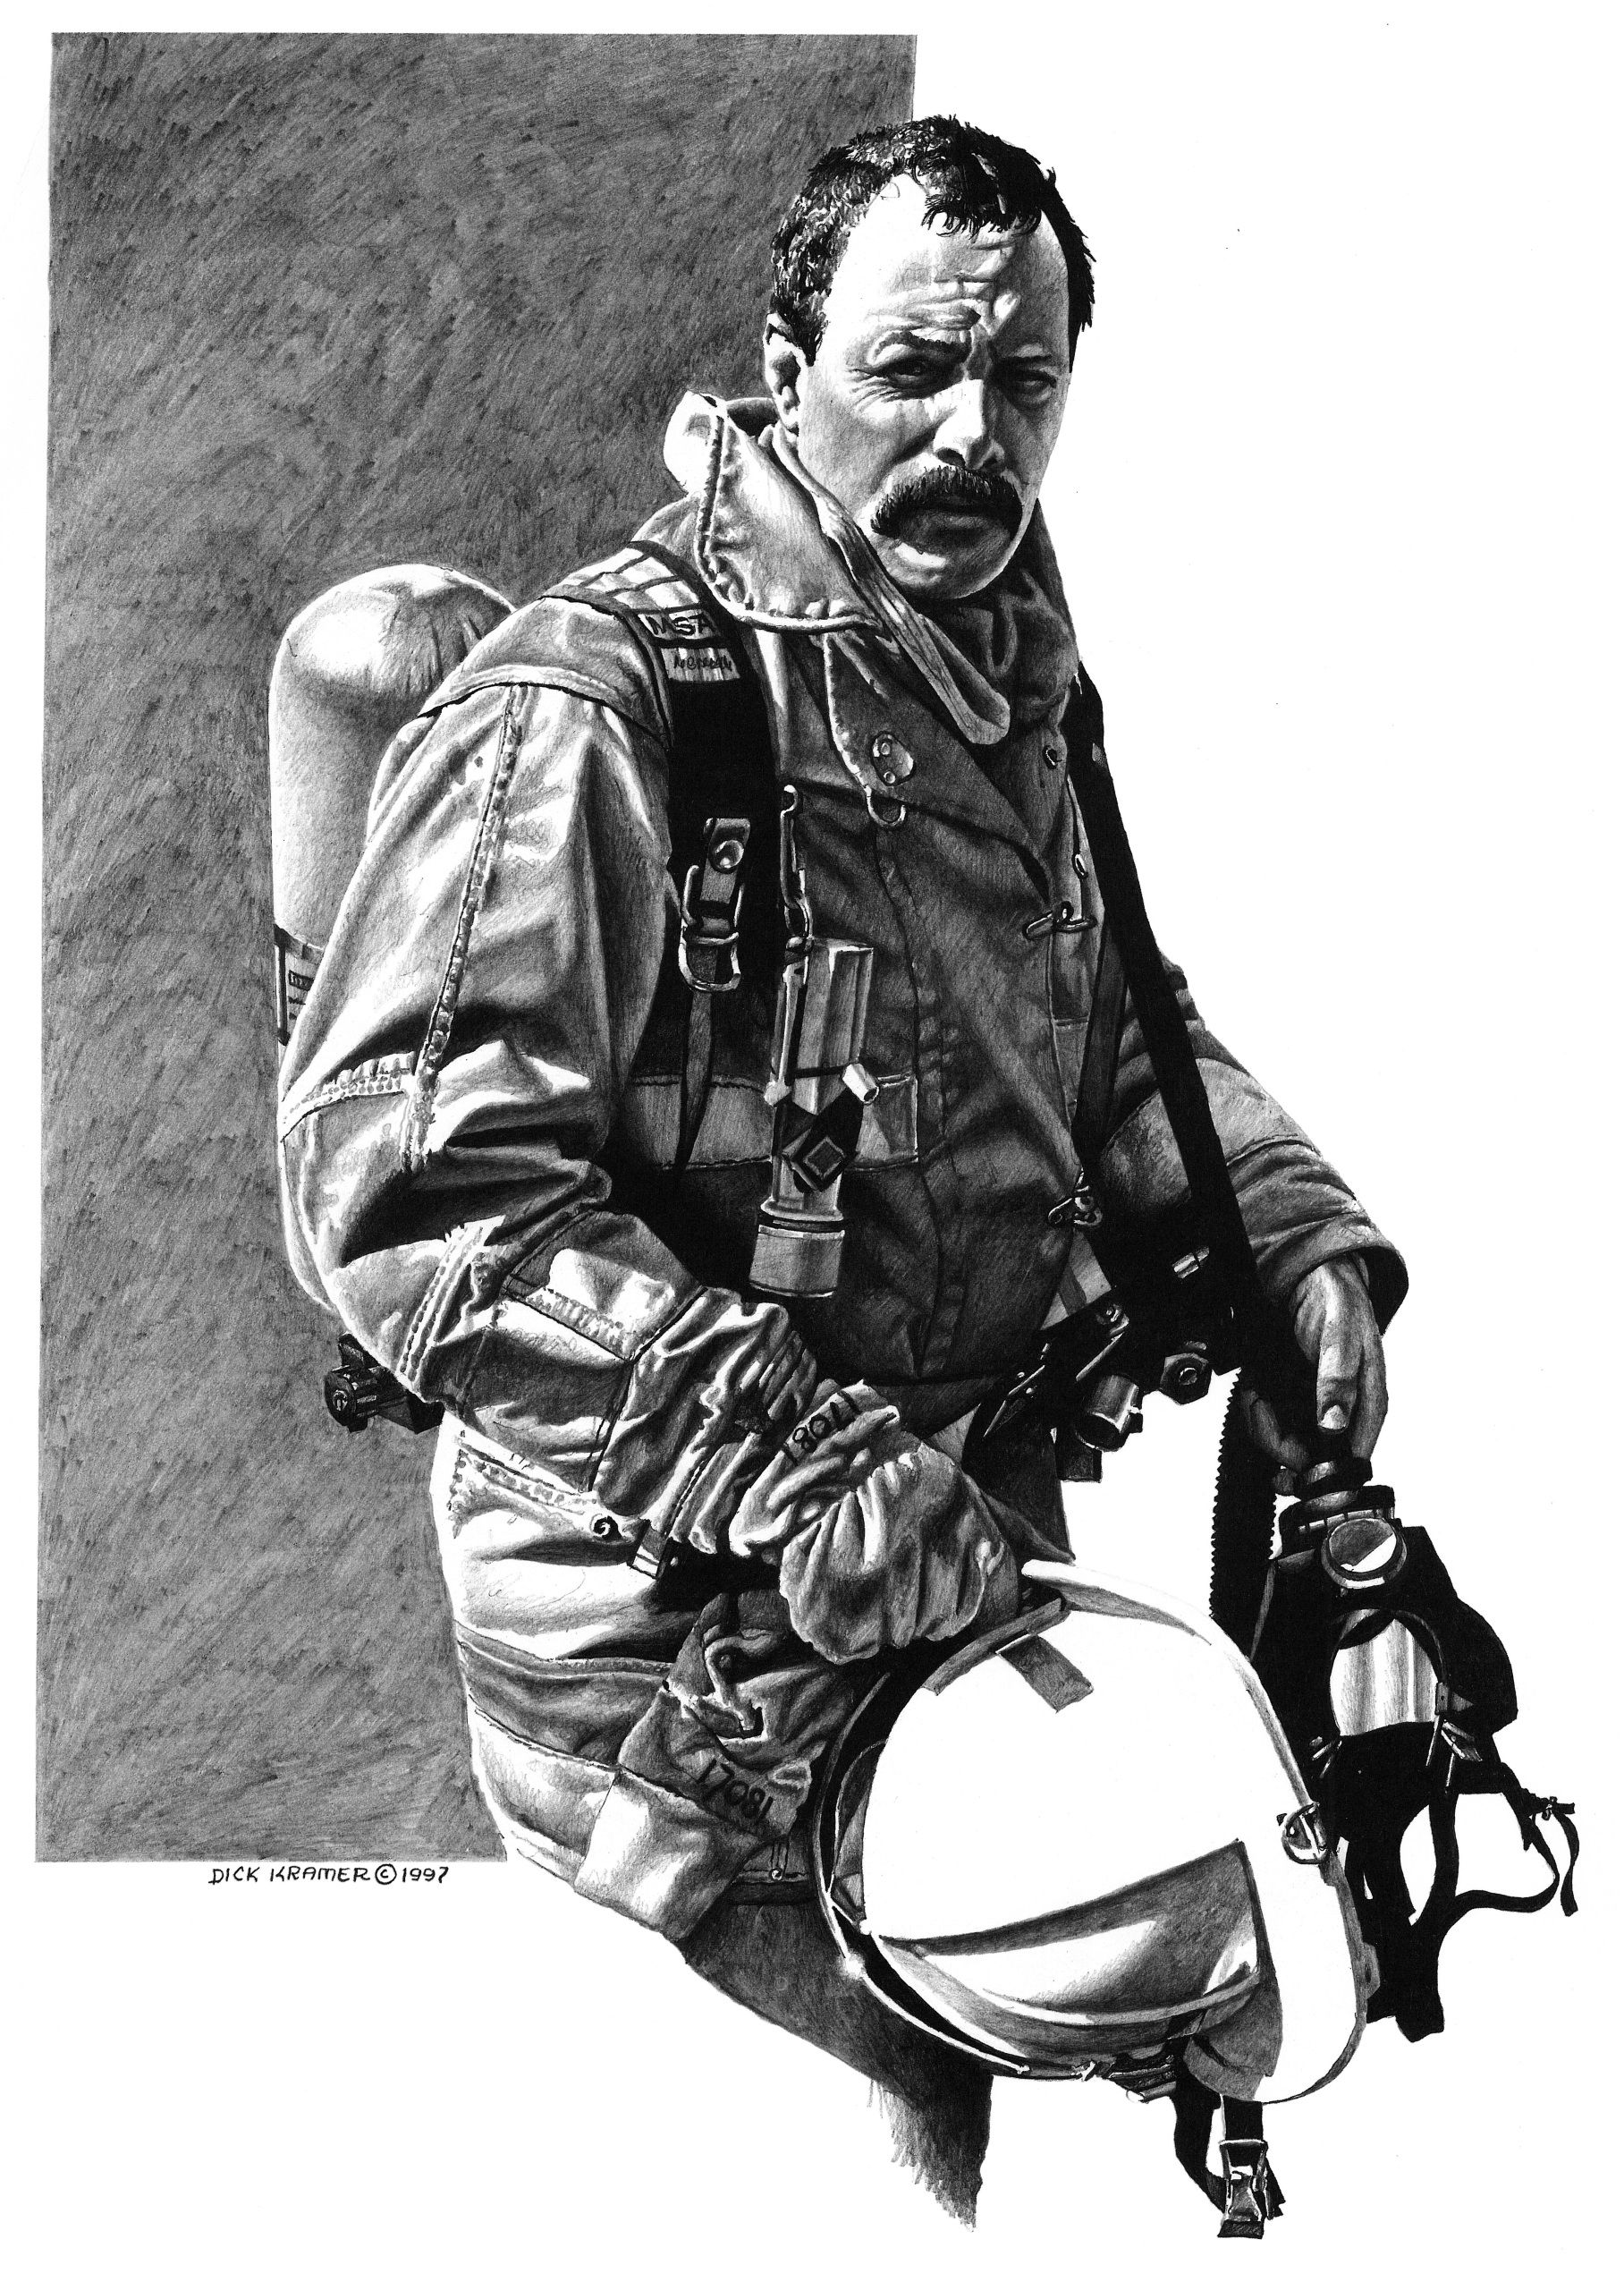 Firefighter Toys, Firefighter Apparel, Military Art, Pilot, Superfly, Art  Drawings,